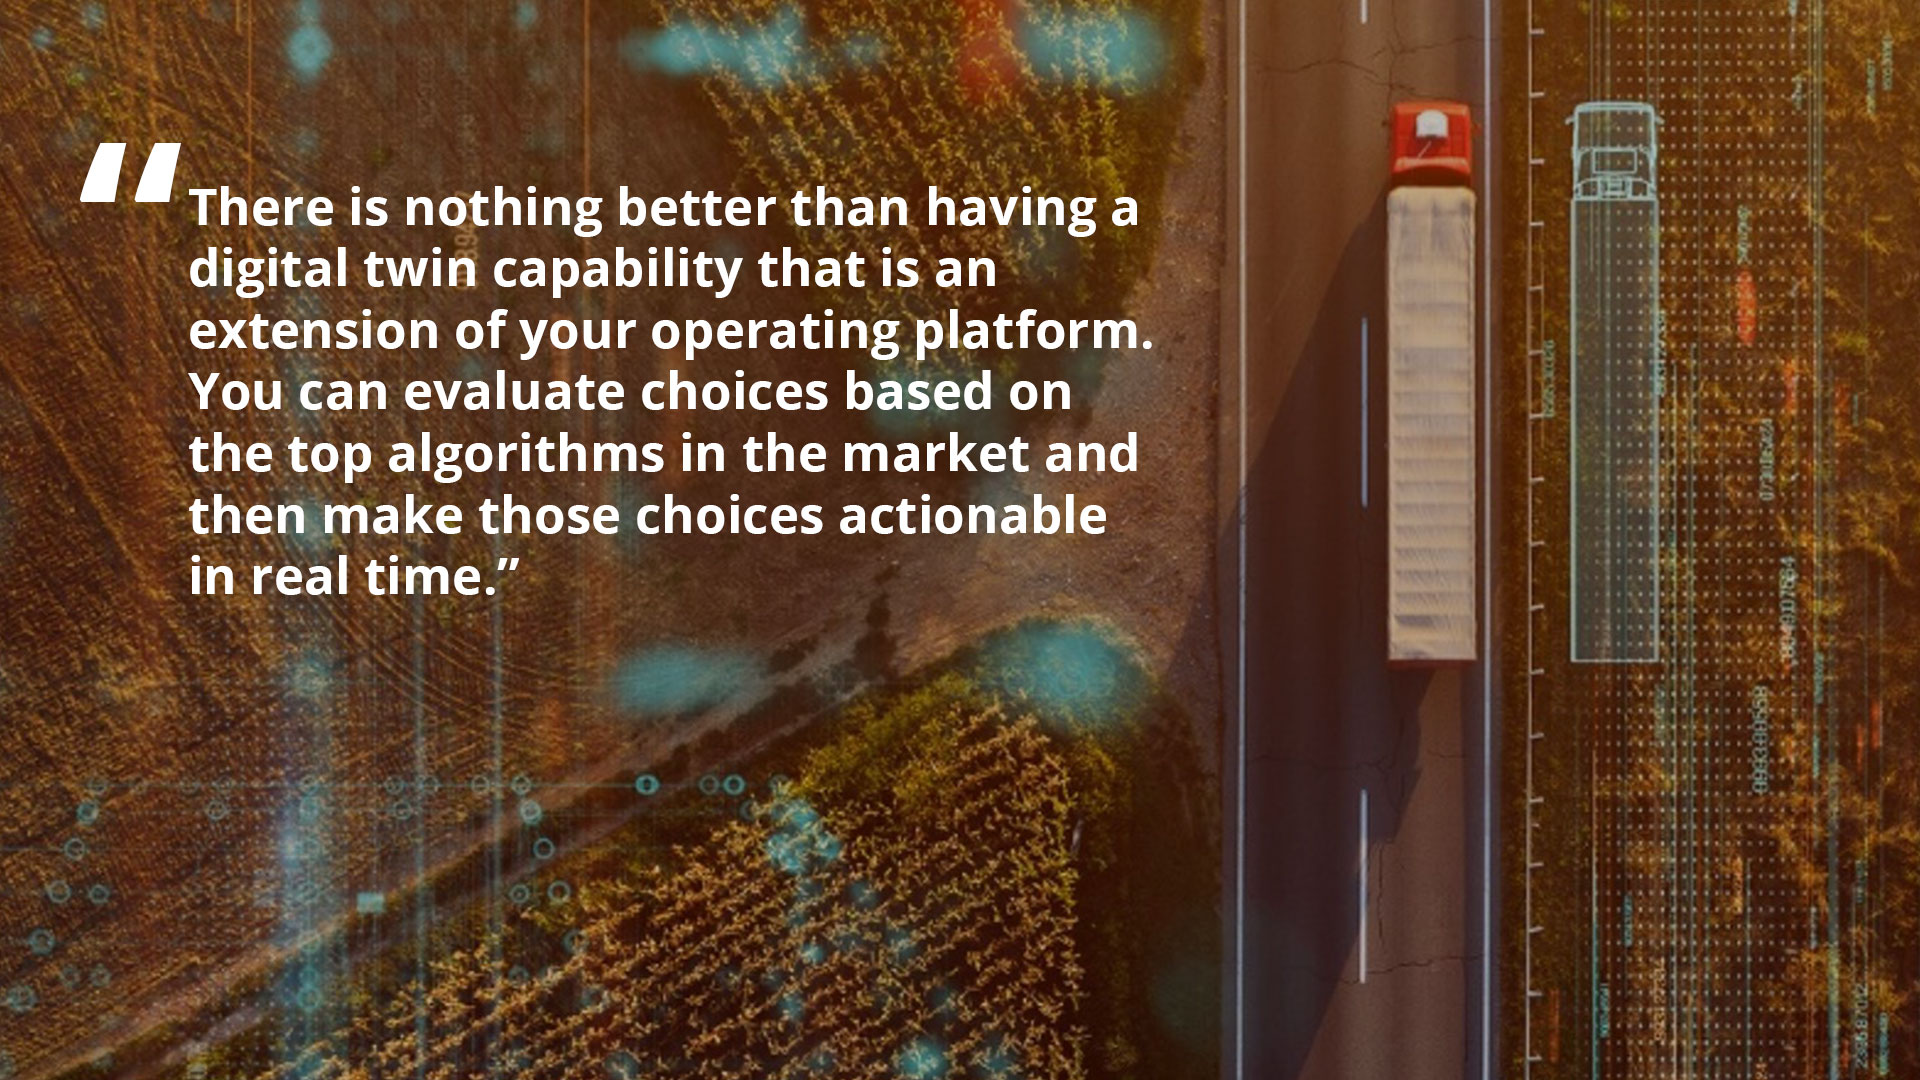 Using Digital Twins in the Supply Chain